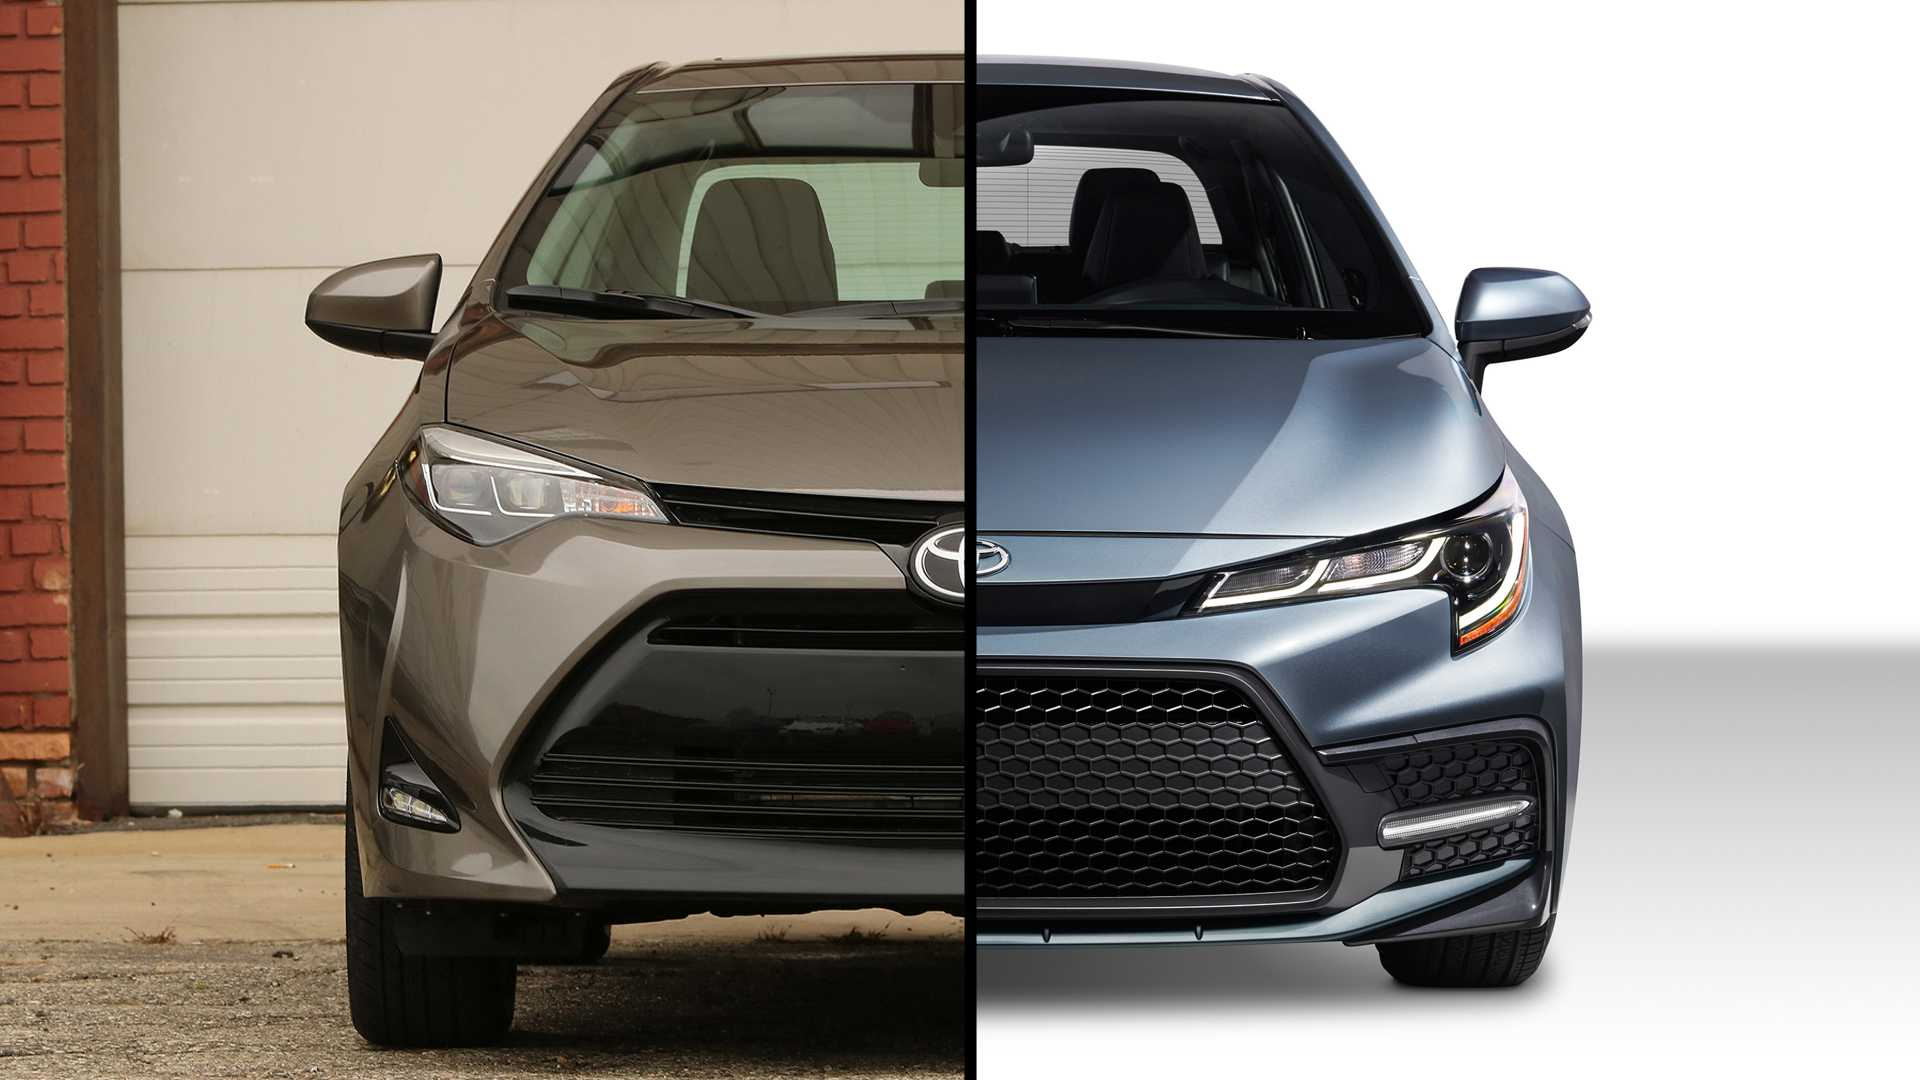 69 Great Toyota Corolla 2020 Uk Overview with Toyota Corolla 2020 Uk